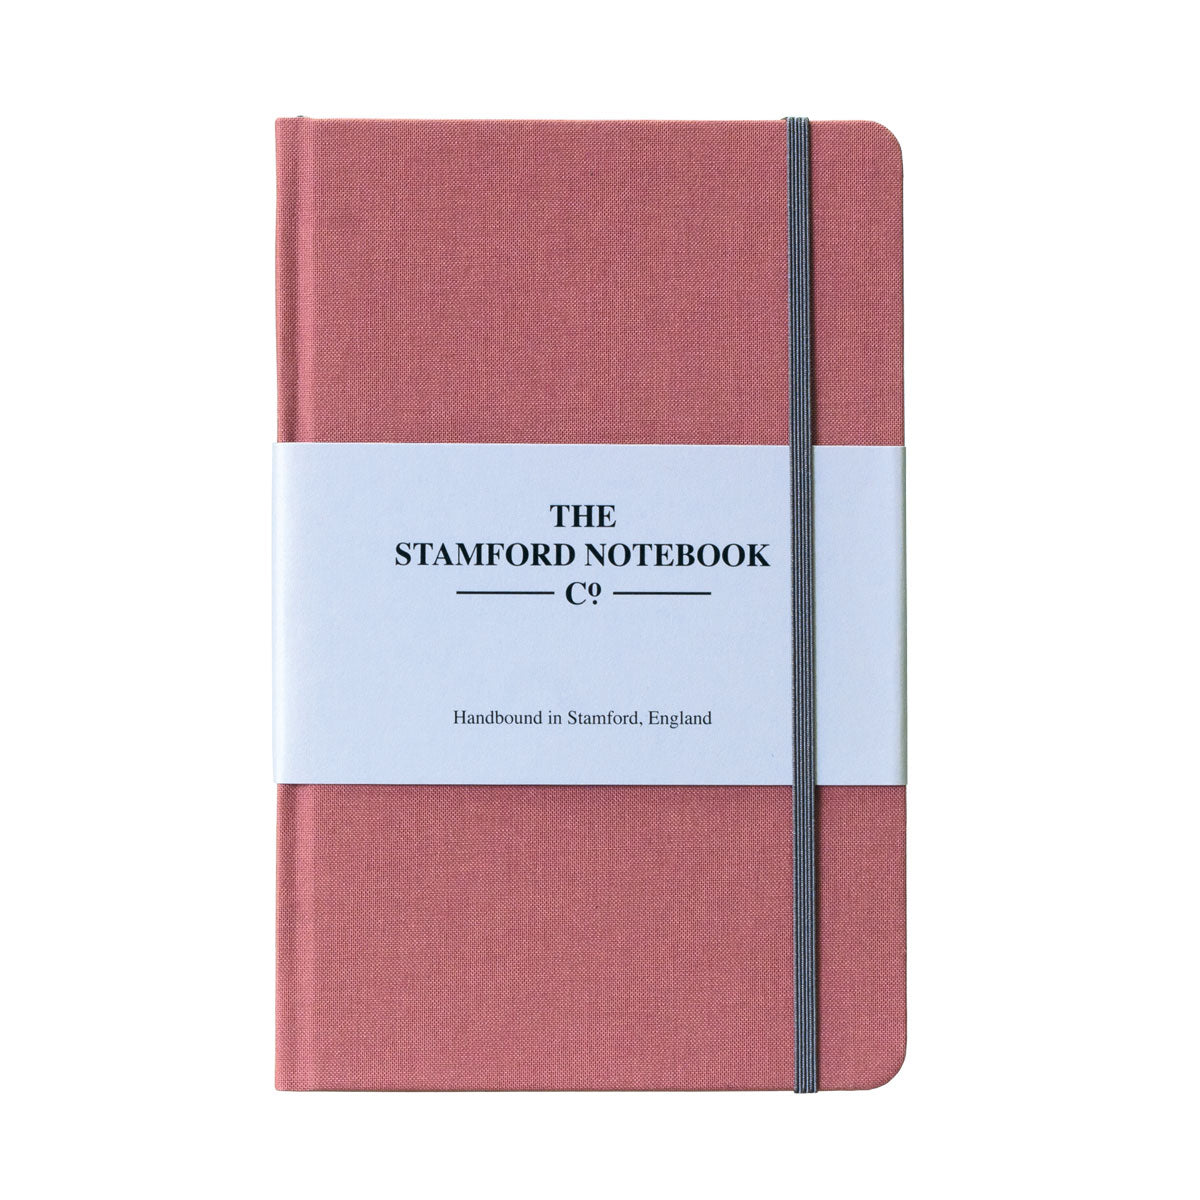 Rose pink woven cloth handbound notebook